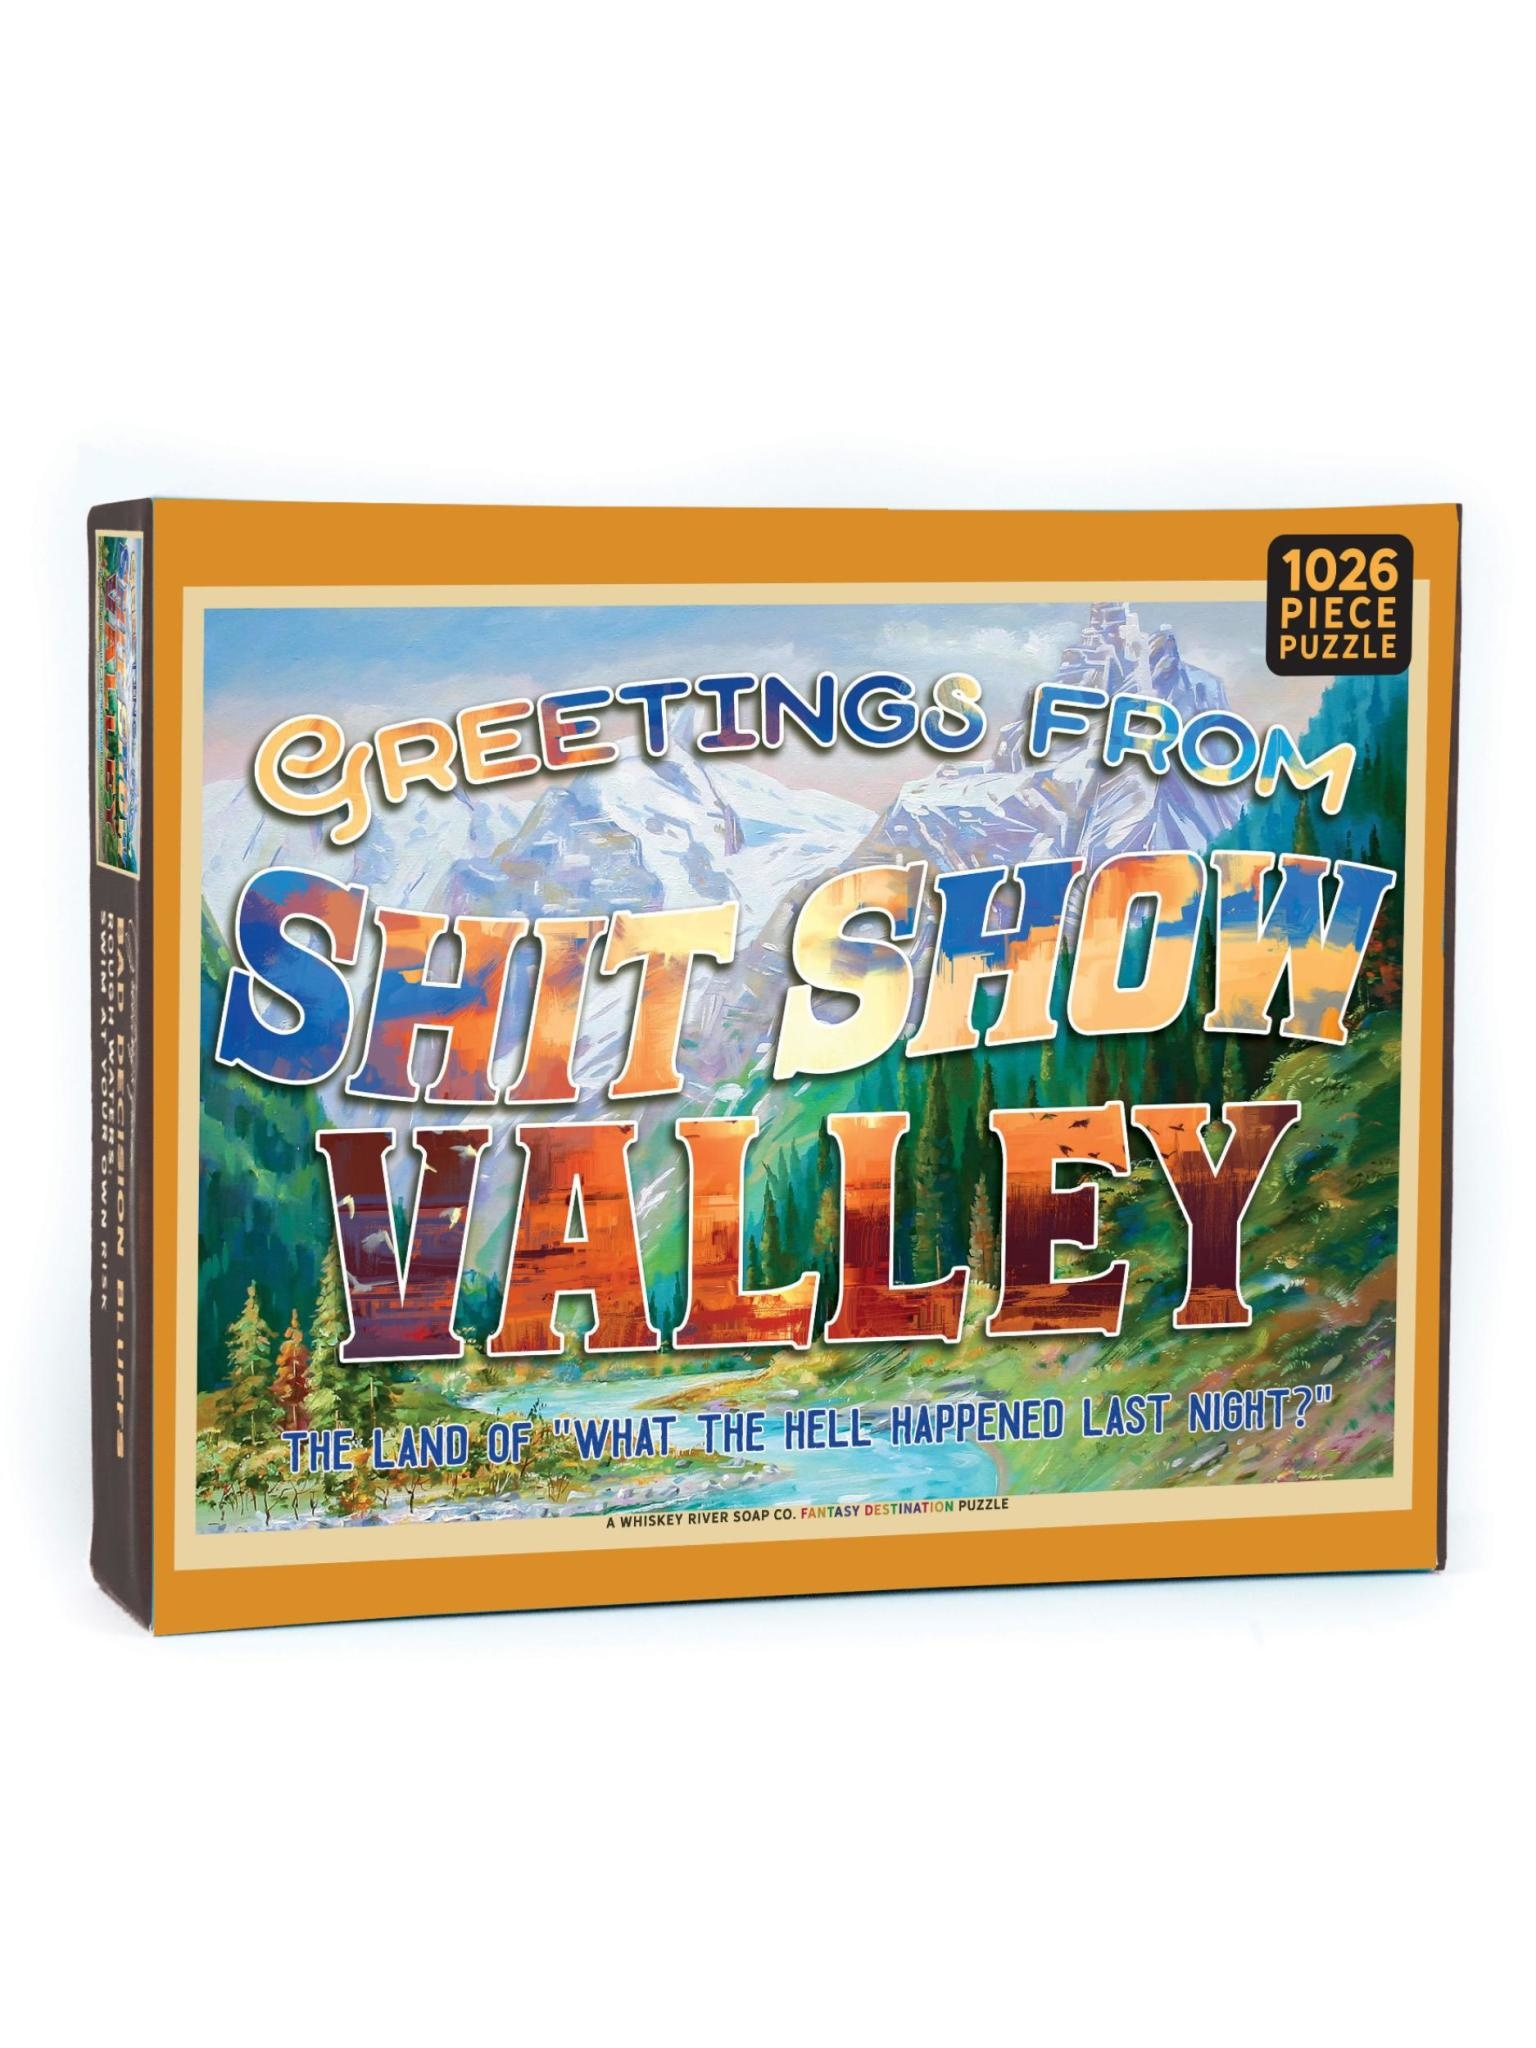 Whiskey River Soap Co. Sh*t Show Valley Puzzle